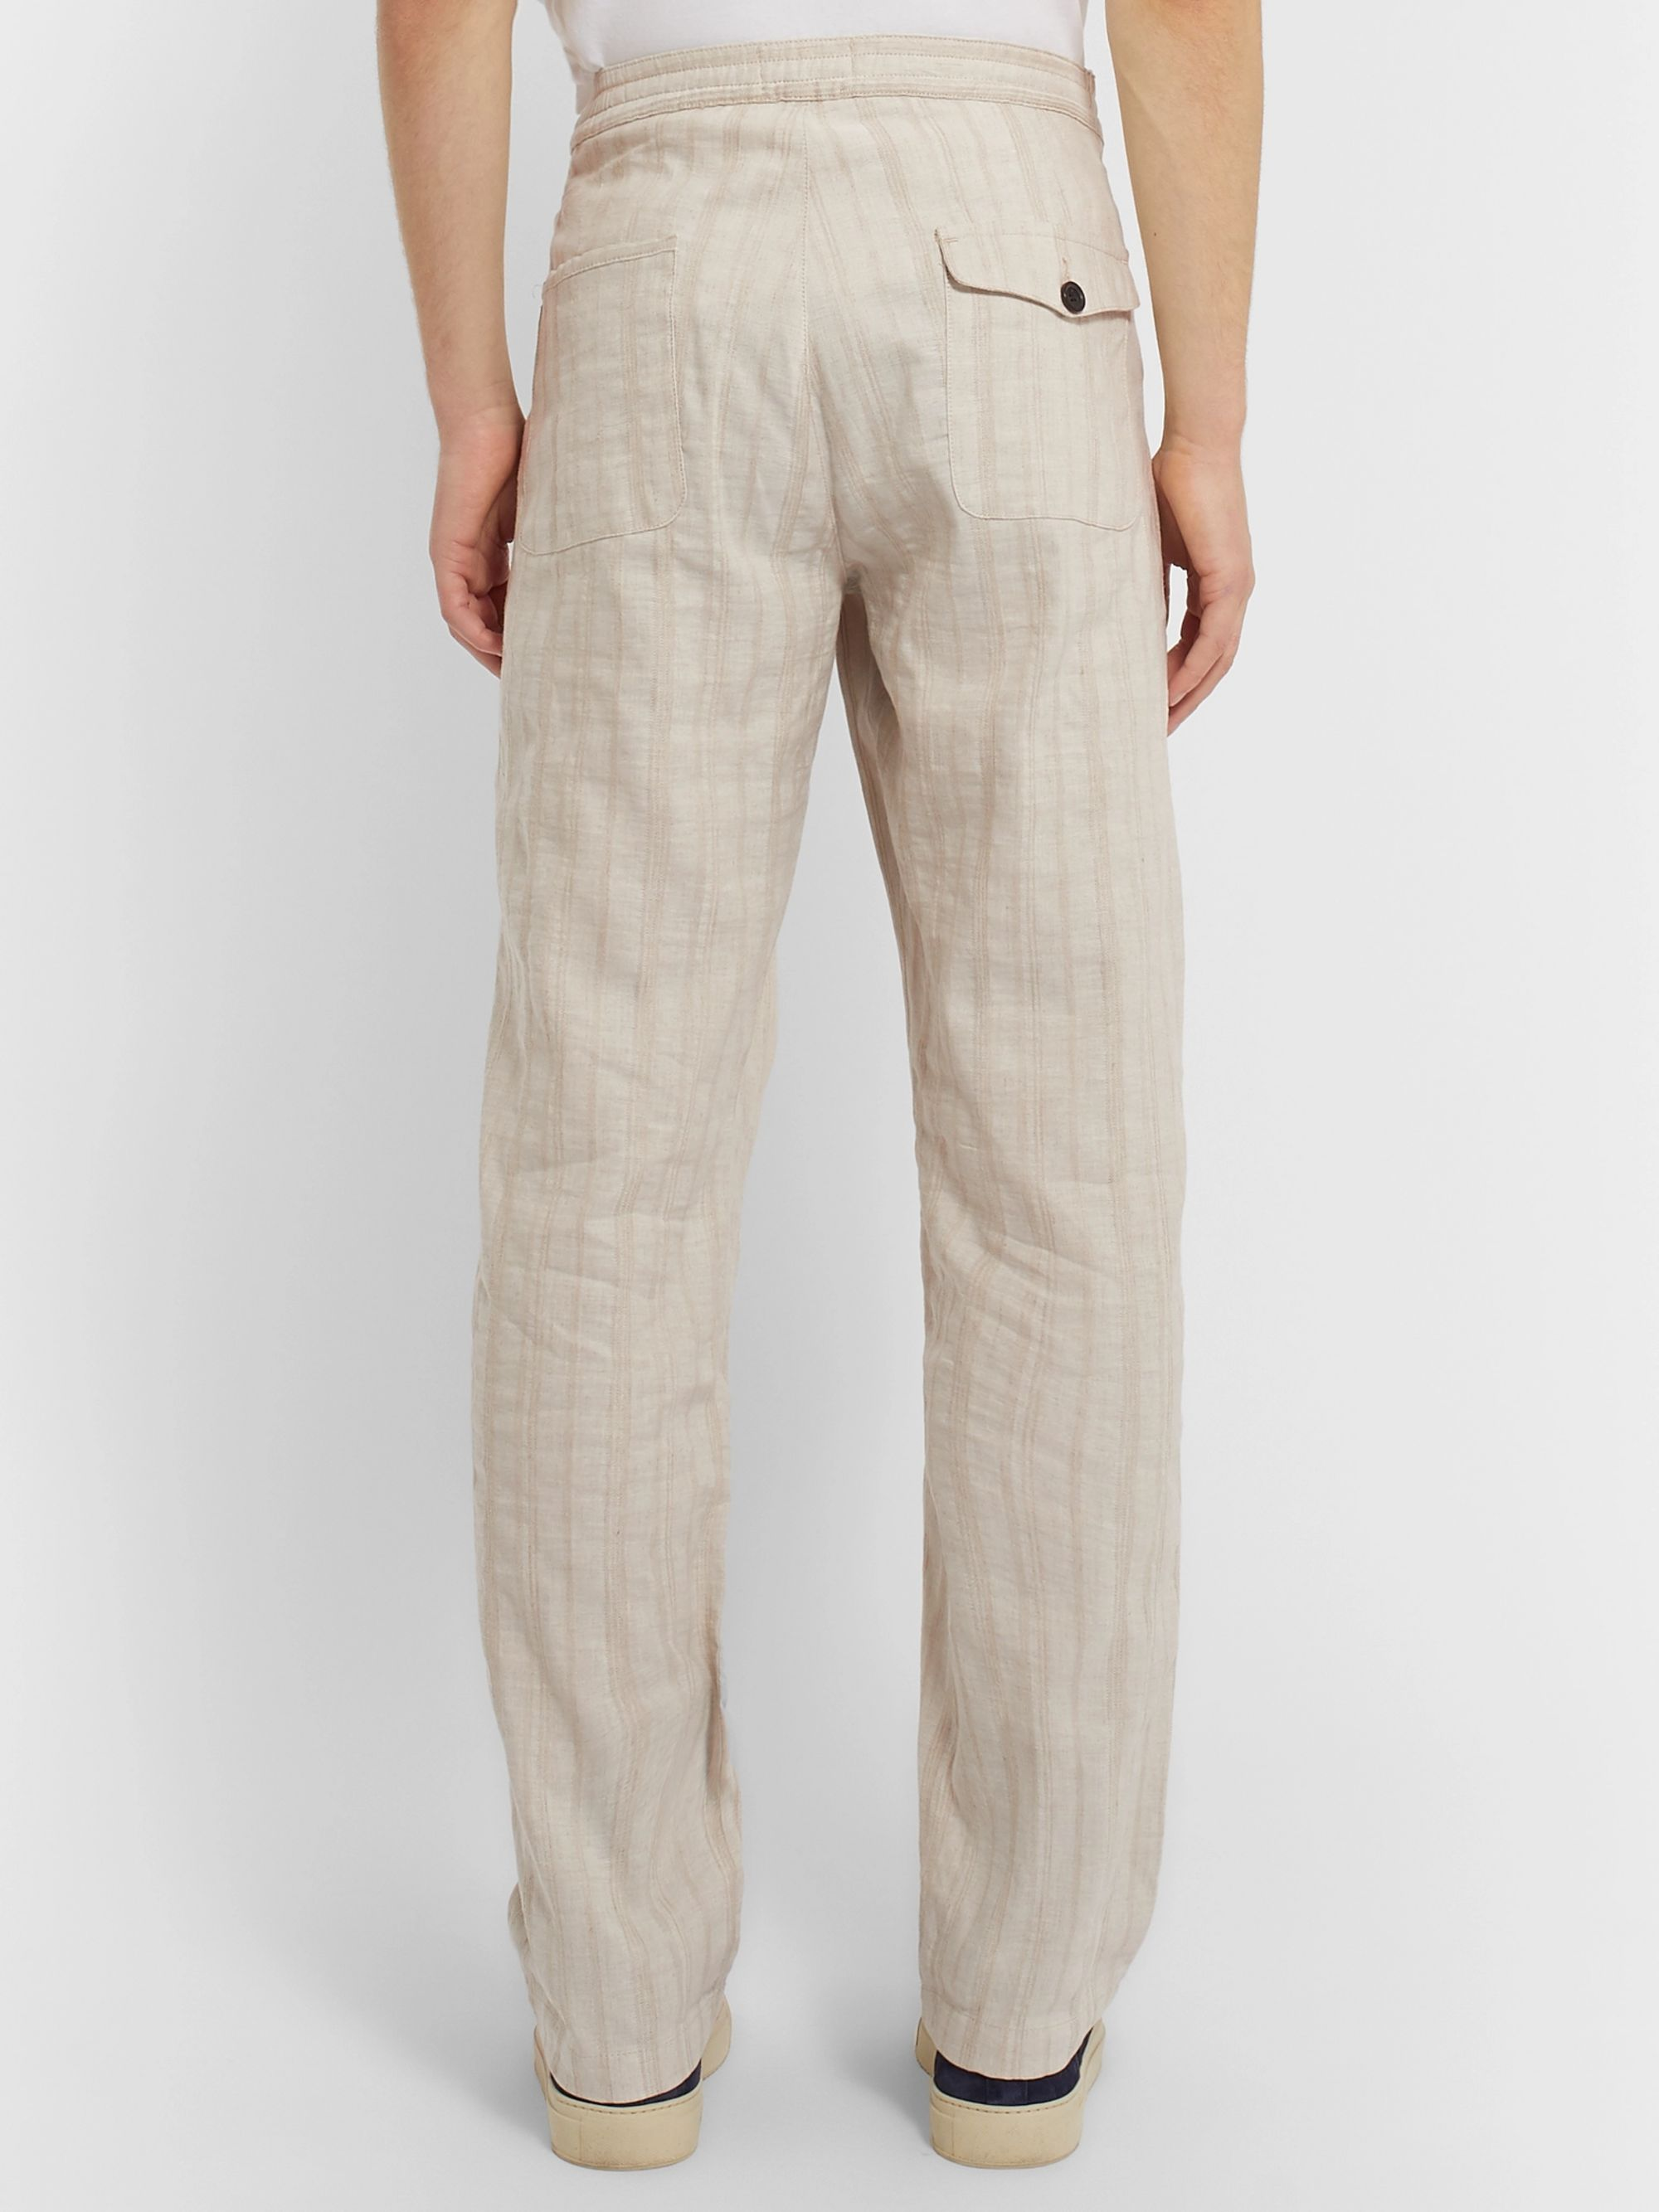 Oliver Spencer Beckford Striped Linen and Cotton-Blend Jacquard Trousers